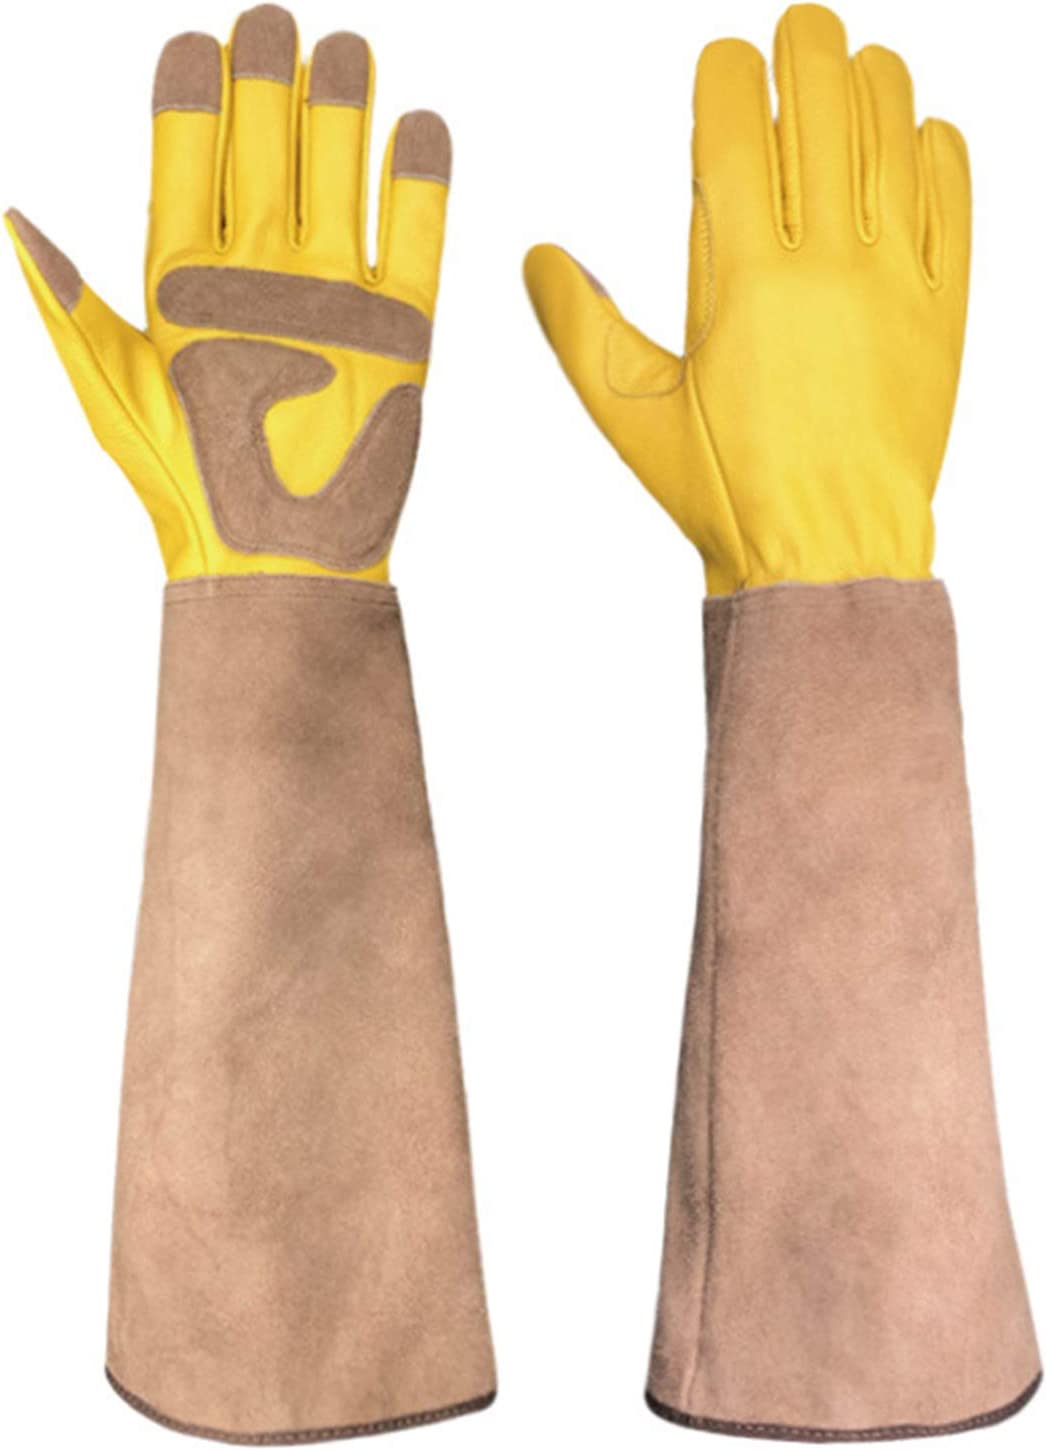 Garden Genie Gloves Waterproof with Outlet SALE Digg Claw OFFicial site for